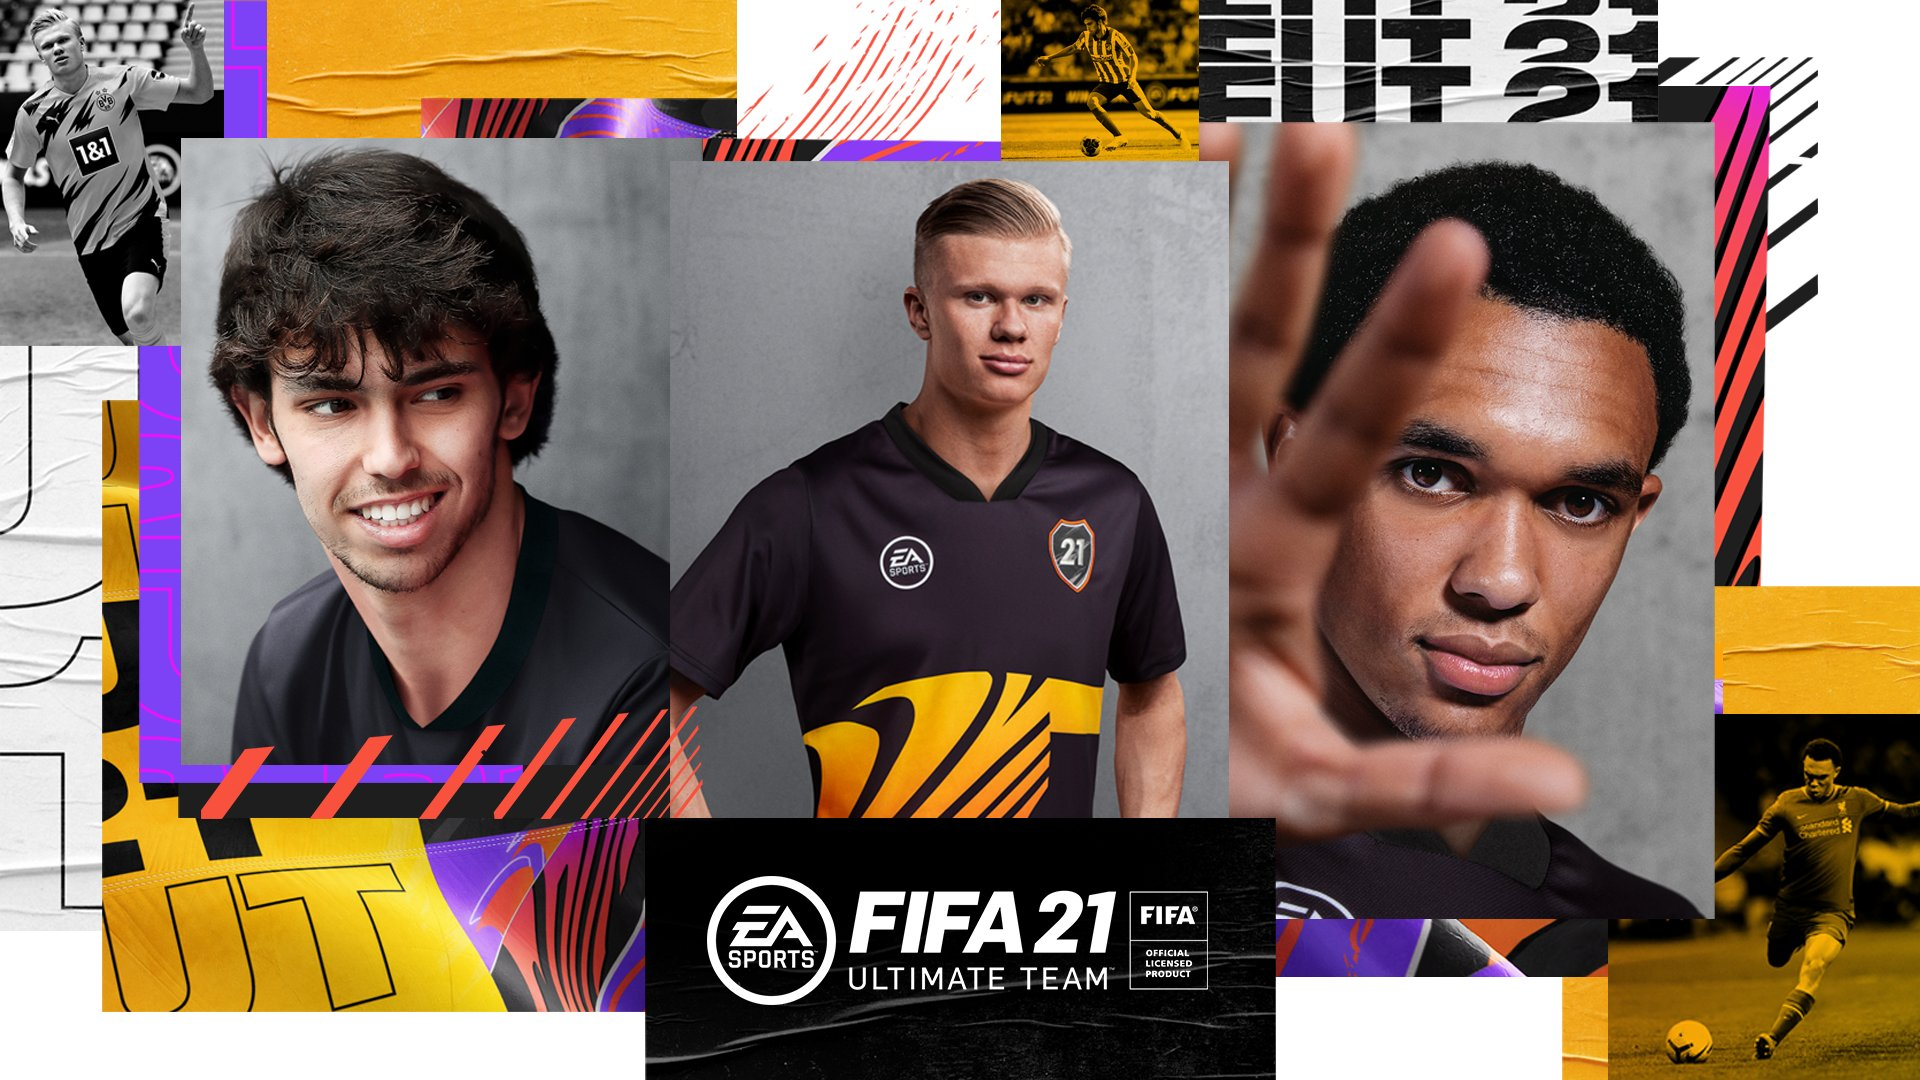 FIFA 21 Ultimate Team Wallpaper